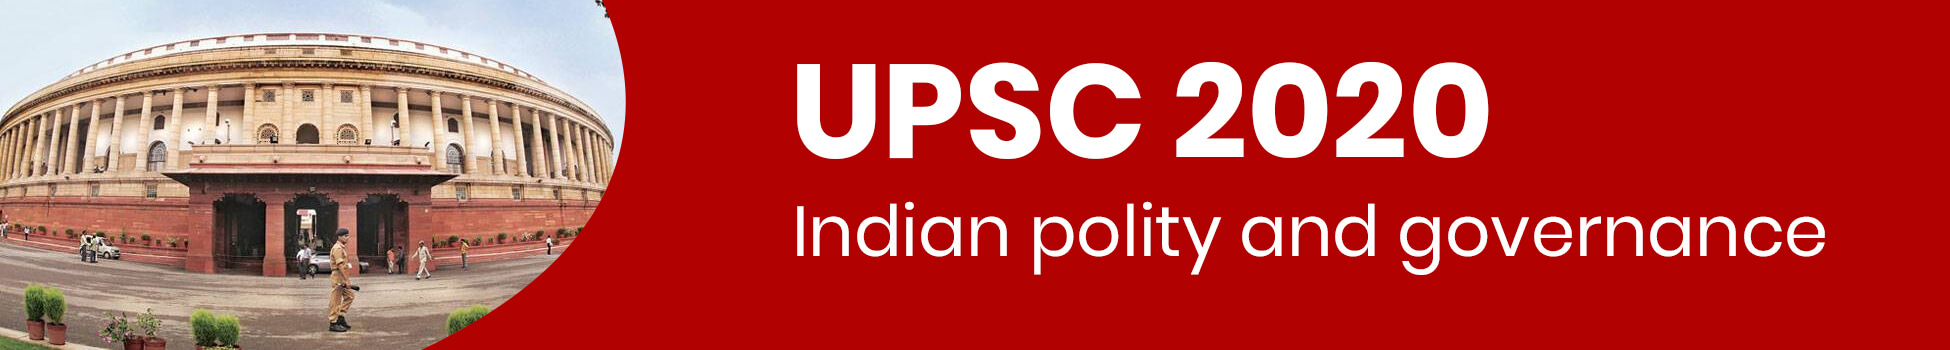 Indian polity and governance - UPSC 2020